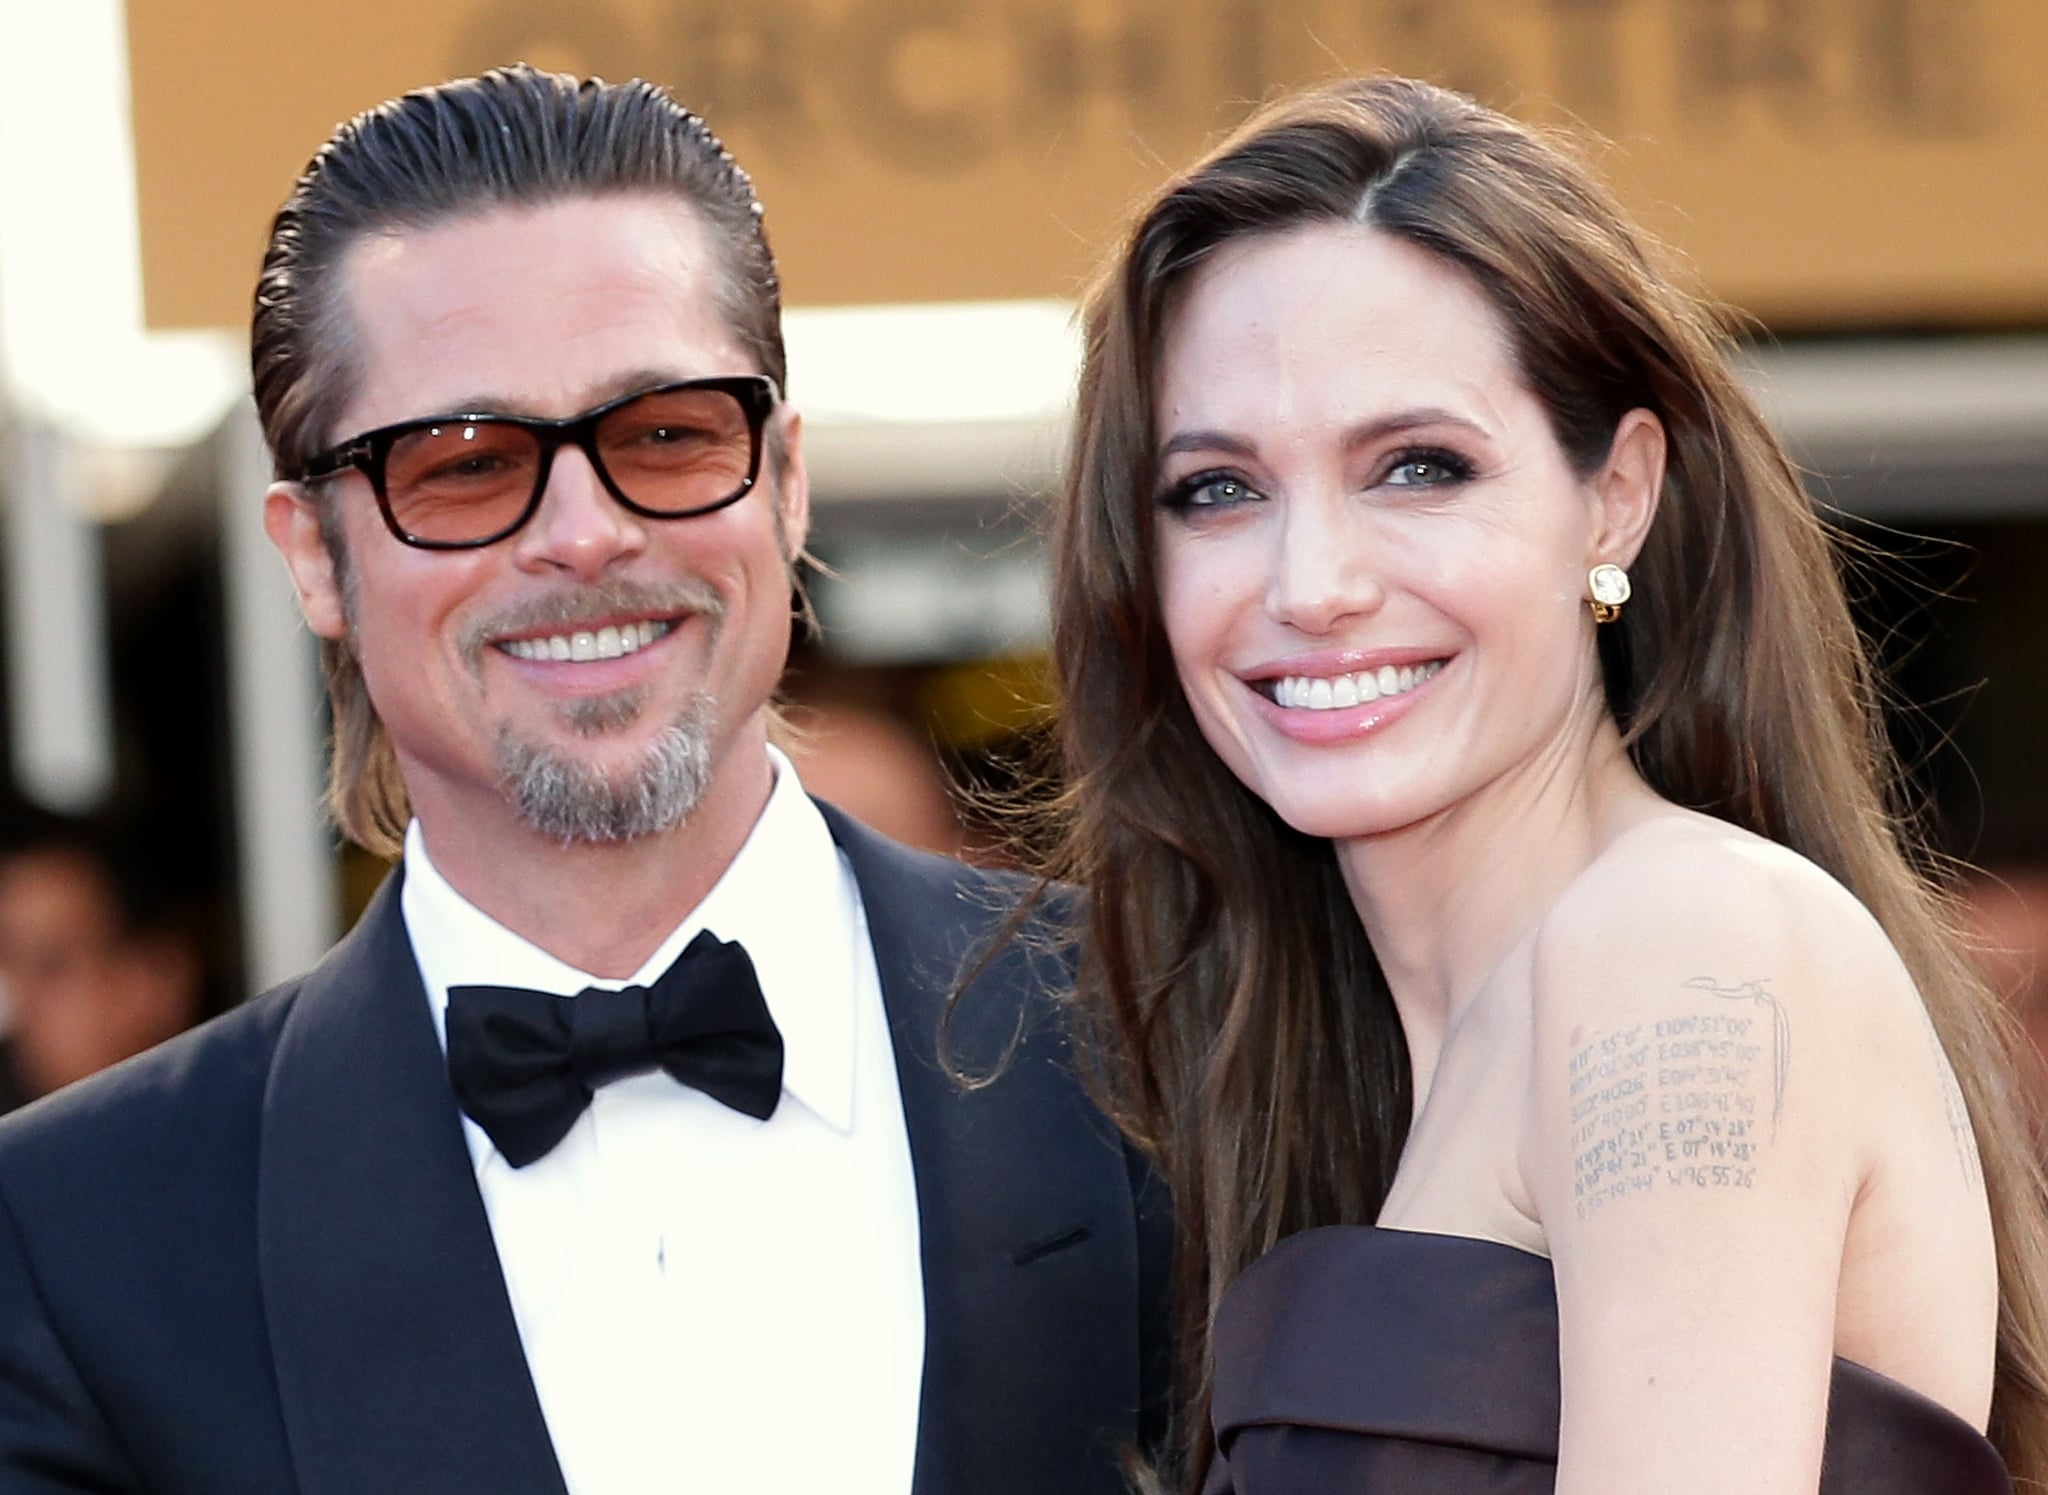 Brad Pitt, Angelina Jolie may call off divorce